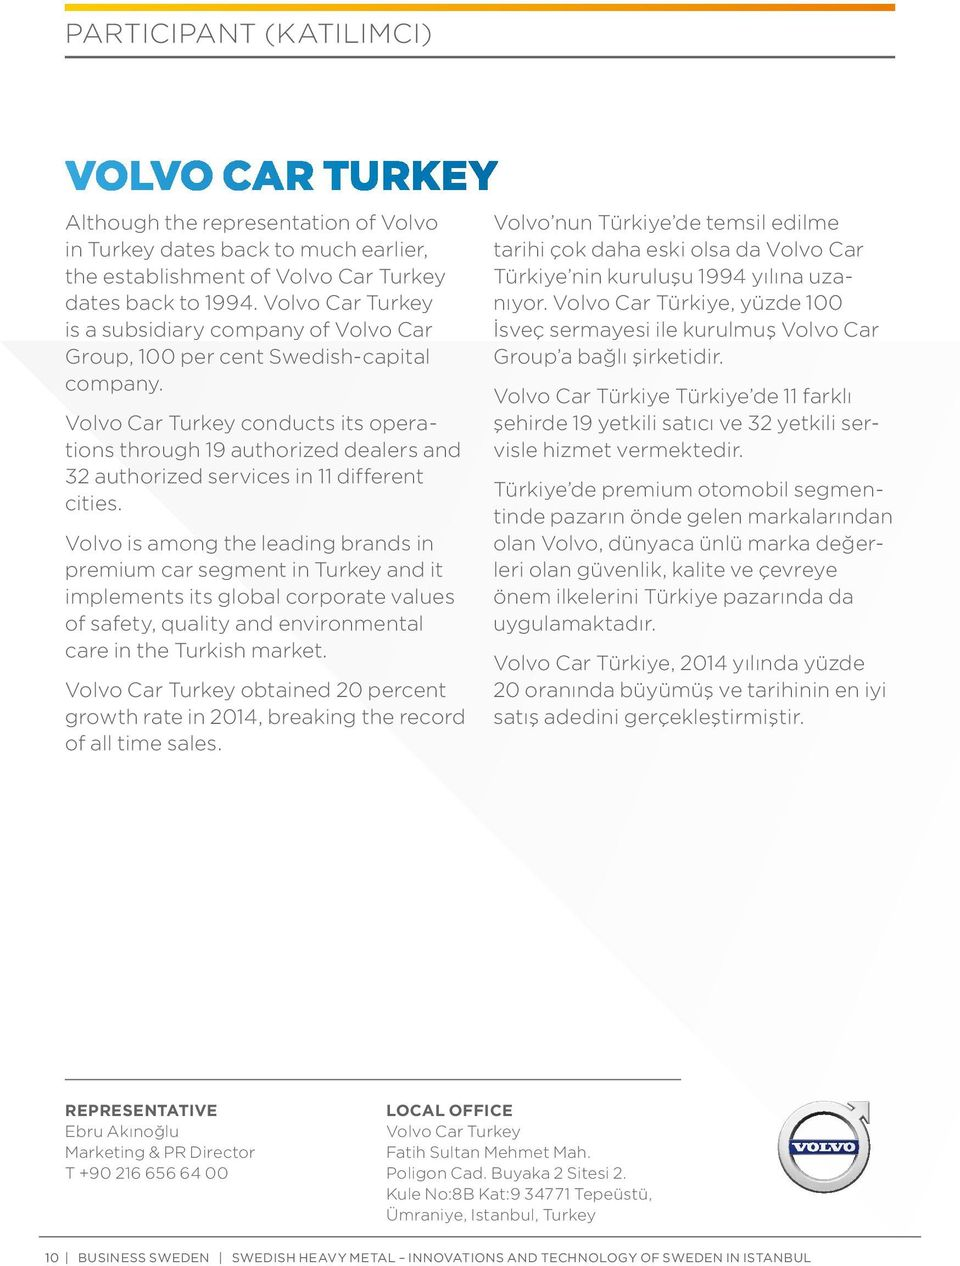 Volvo Car Turkey conducts its operations through 19 authorized dealers and 32 authorized services in 11 different cities.